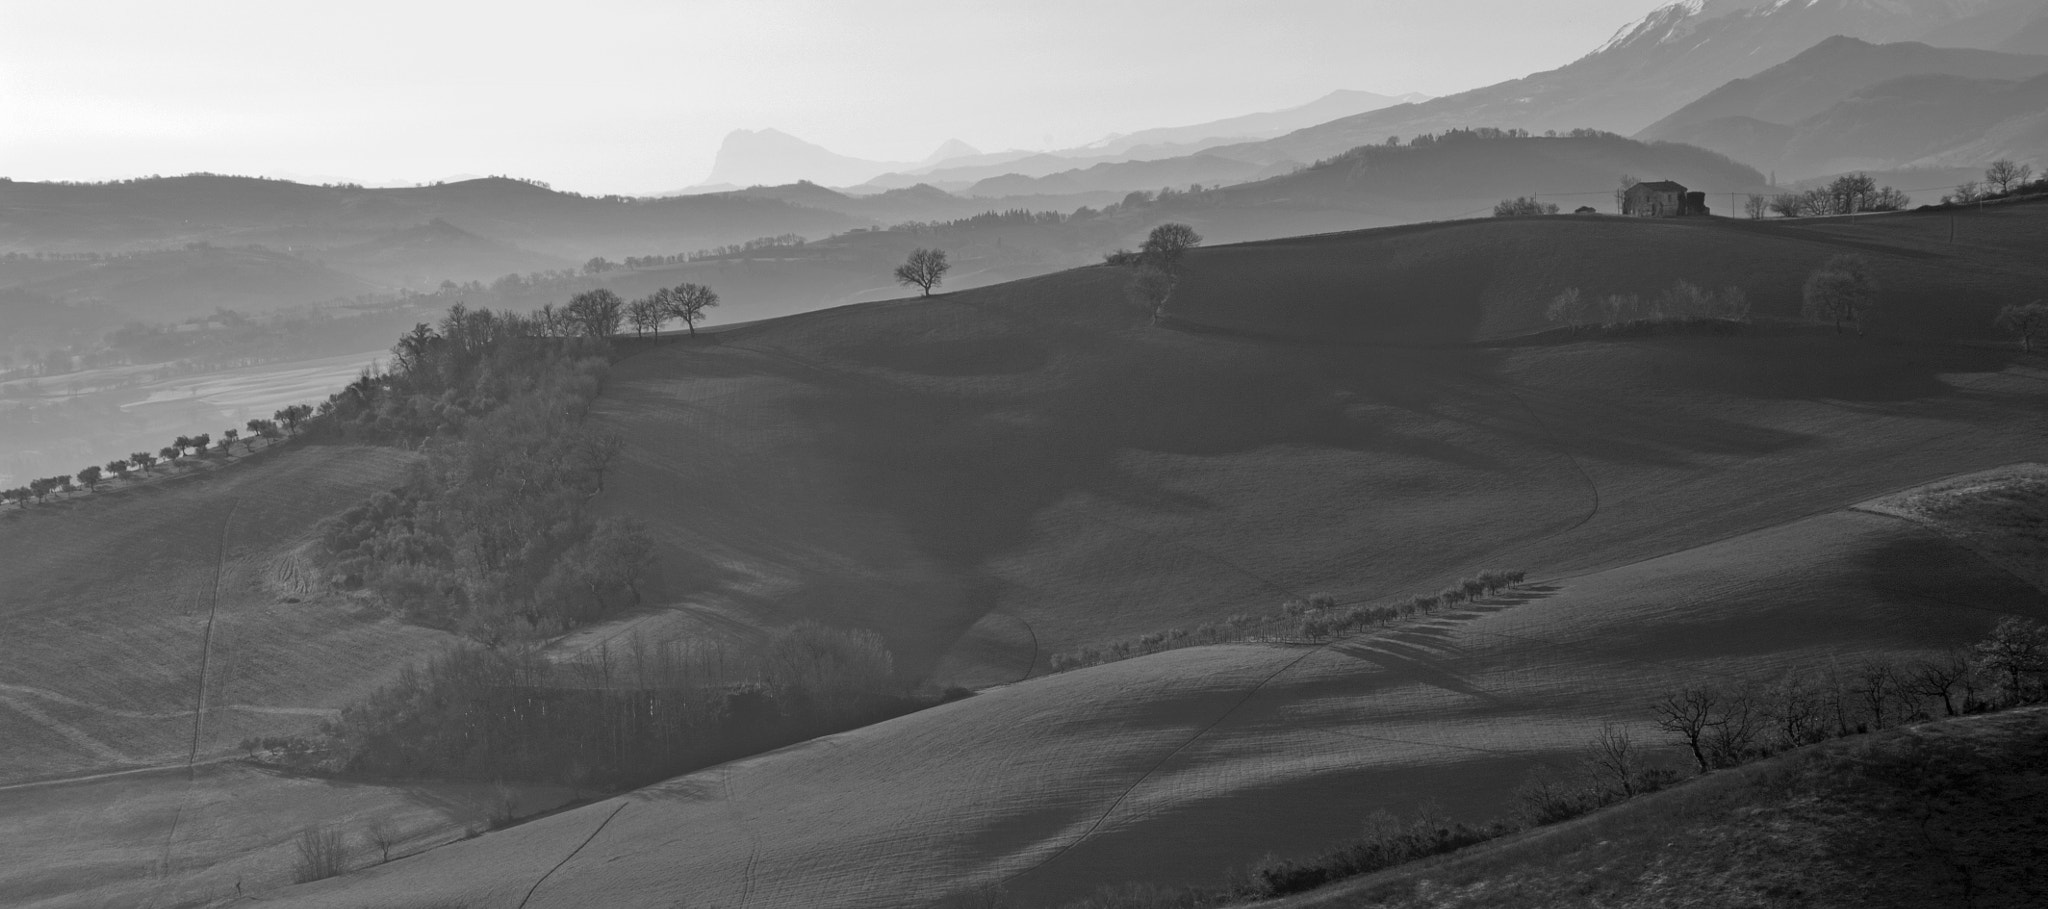 Photograph Country in b/w by Luca Feliziani on 500px